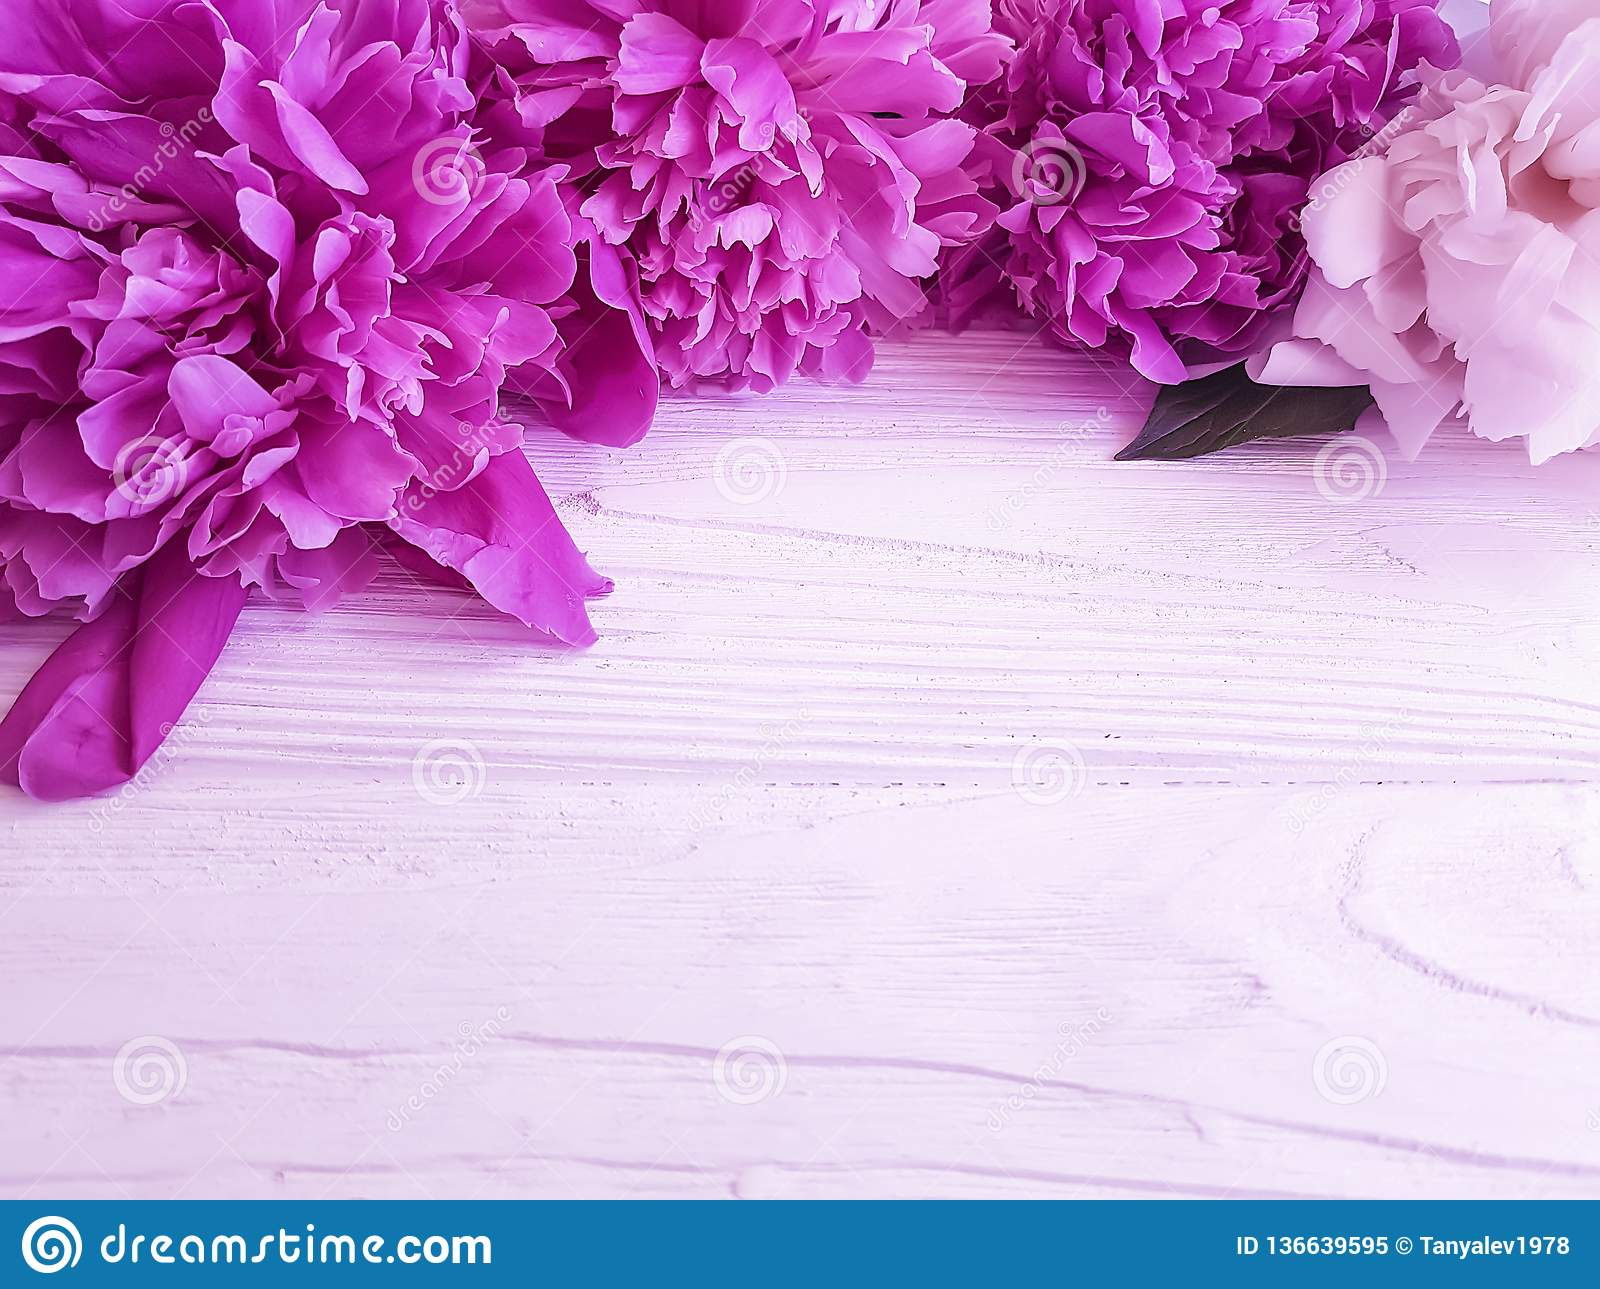 61342d5c458 Beautiful blooming peony wooden background elegance bouquet greeting  vintage summer